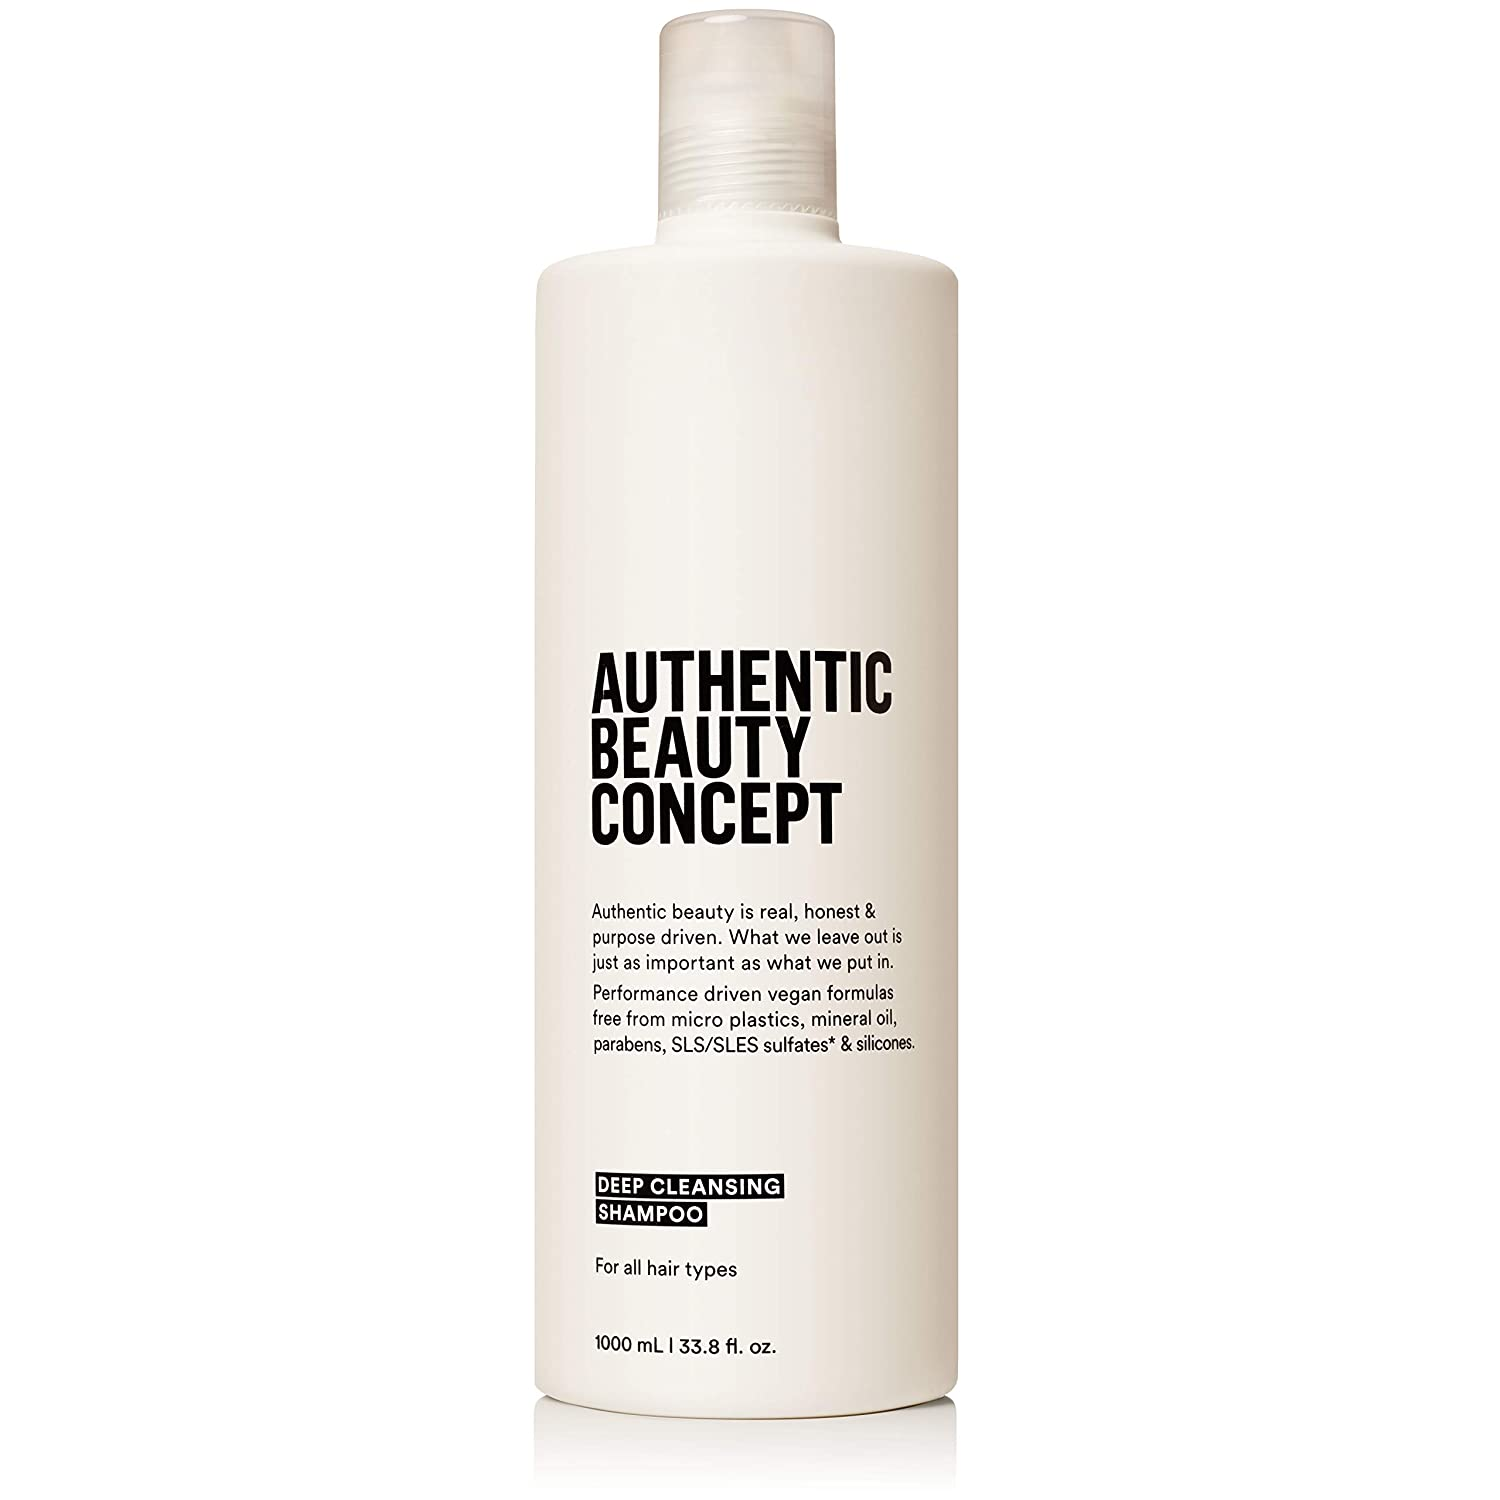 Authentic Beauty Concept Deep Cleansing Hair All Types wholesale Shampoo At the price